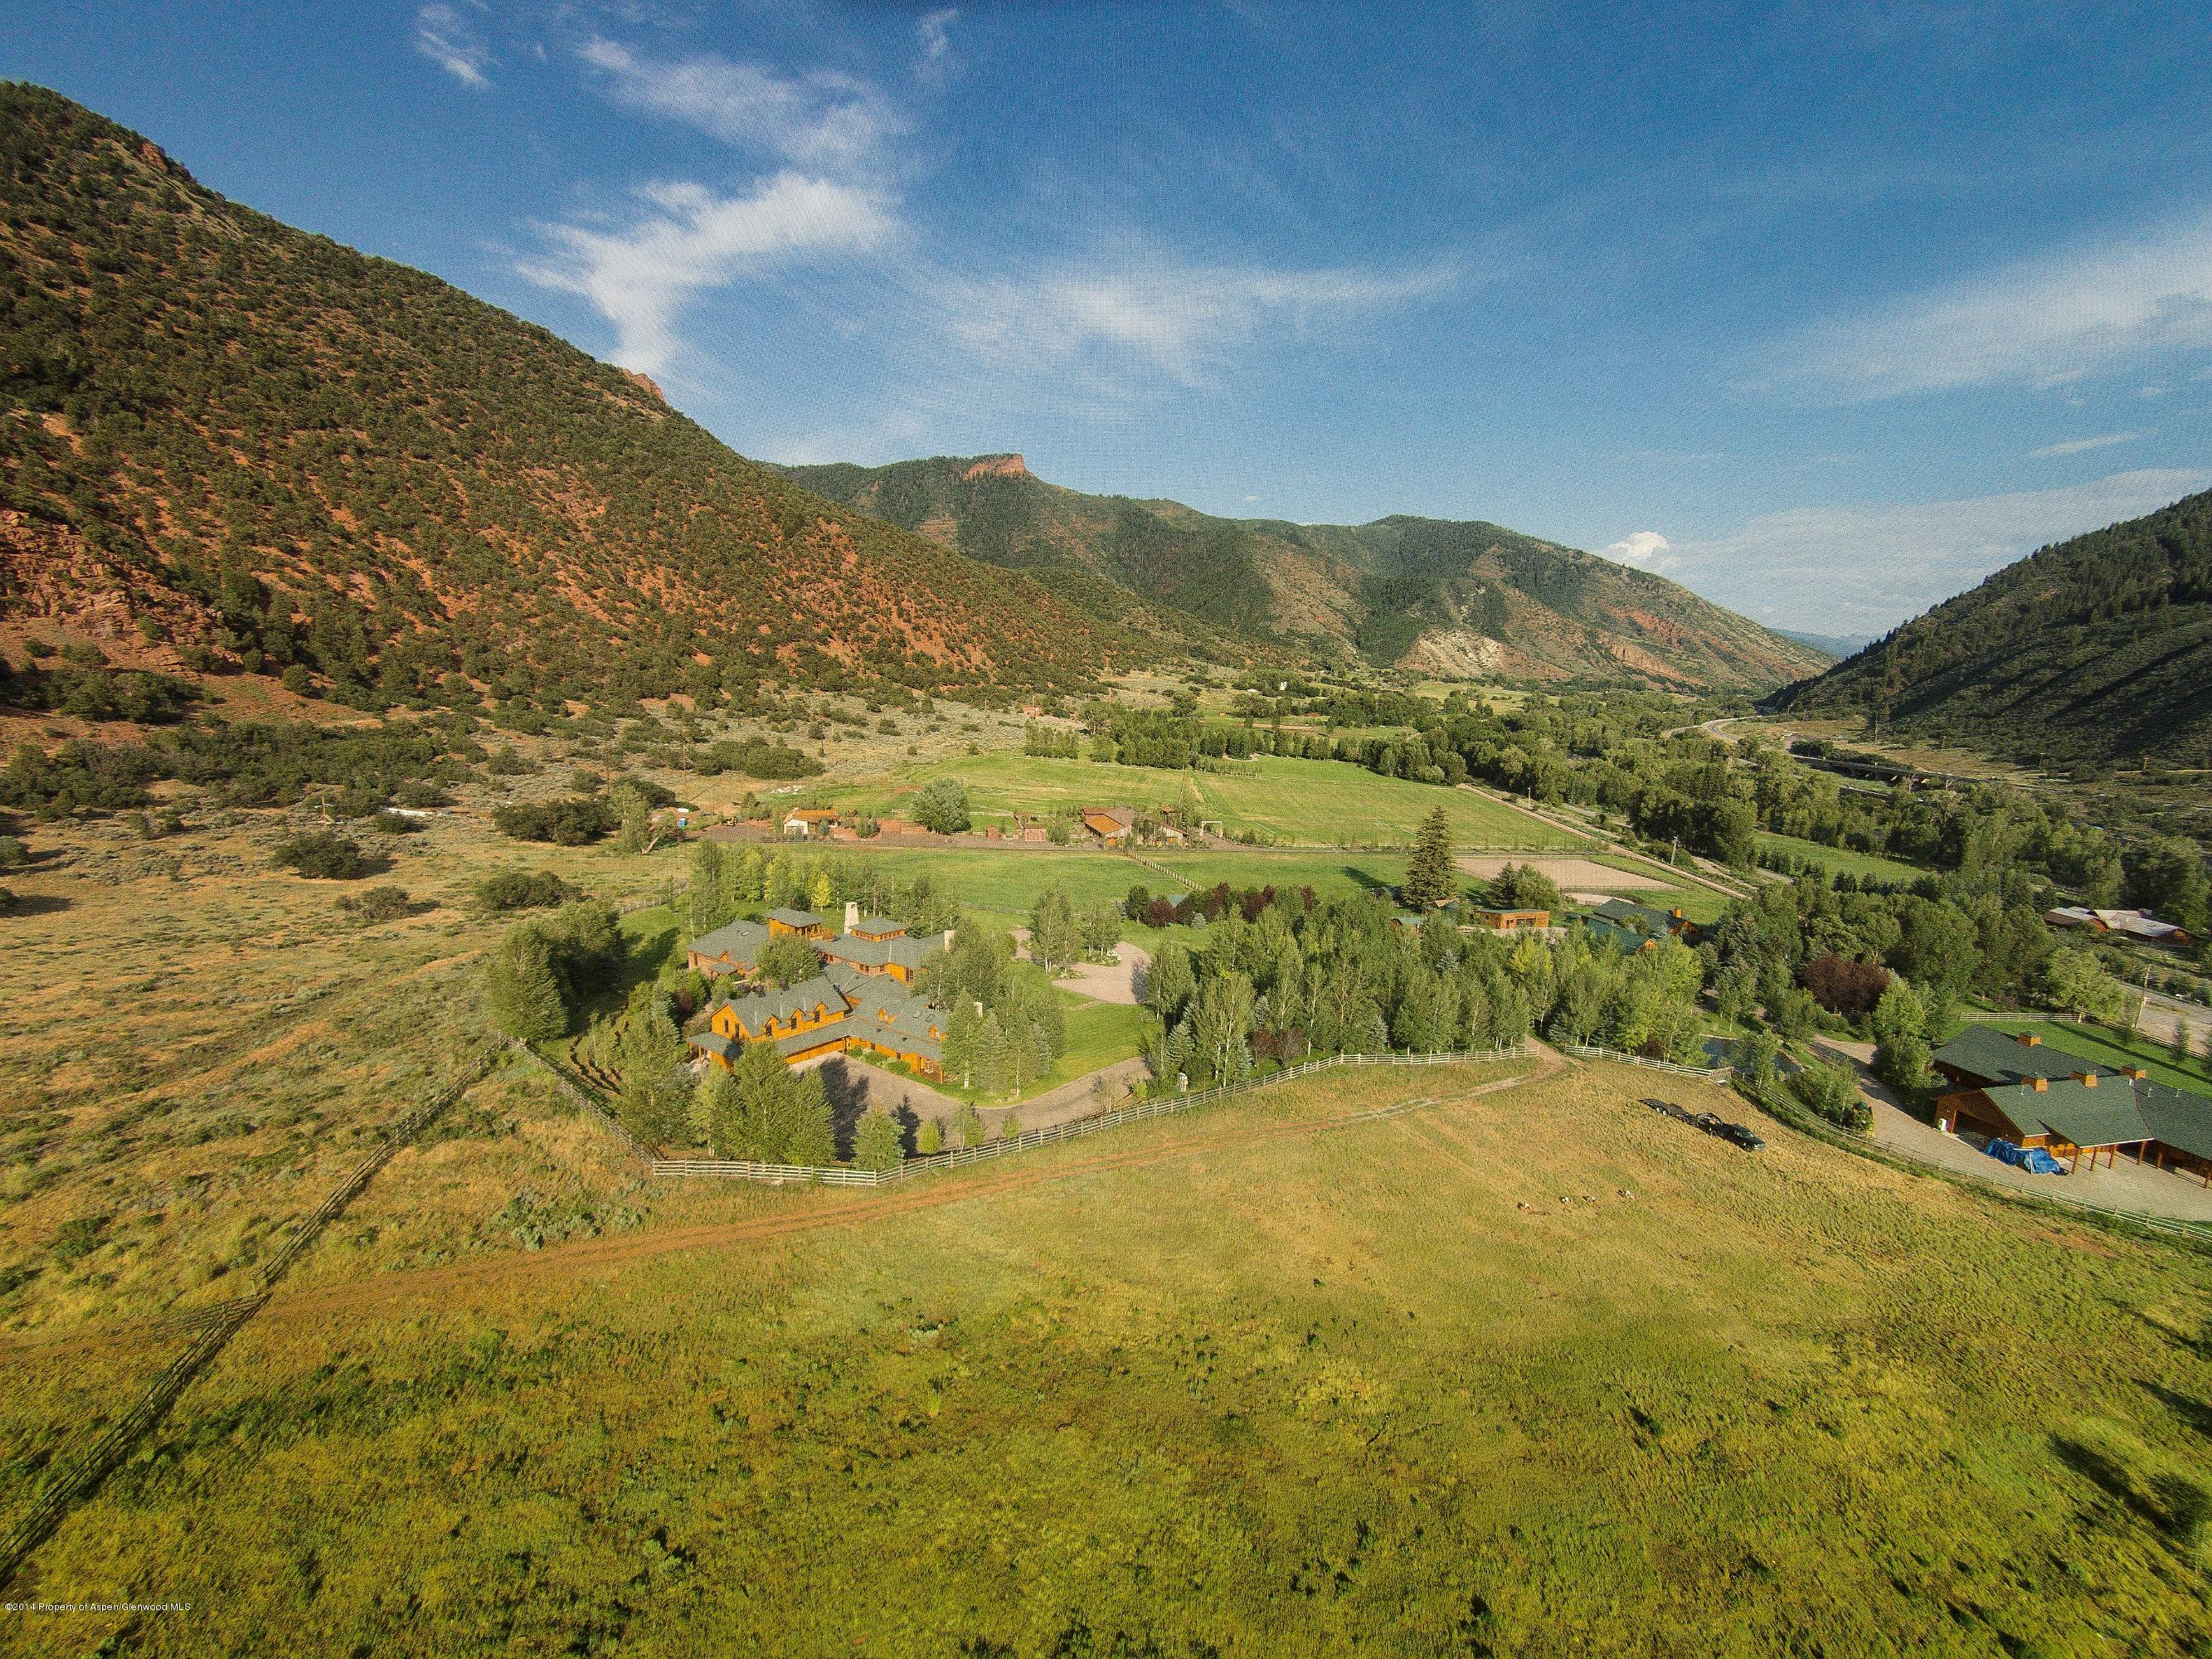 MLS# 135595 - 46 - 50 E River Ranch Road, Snowmass, CO 81654